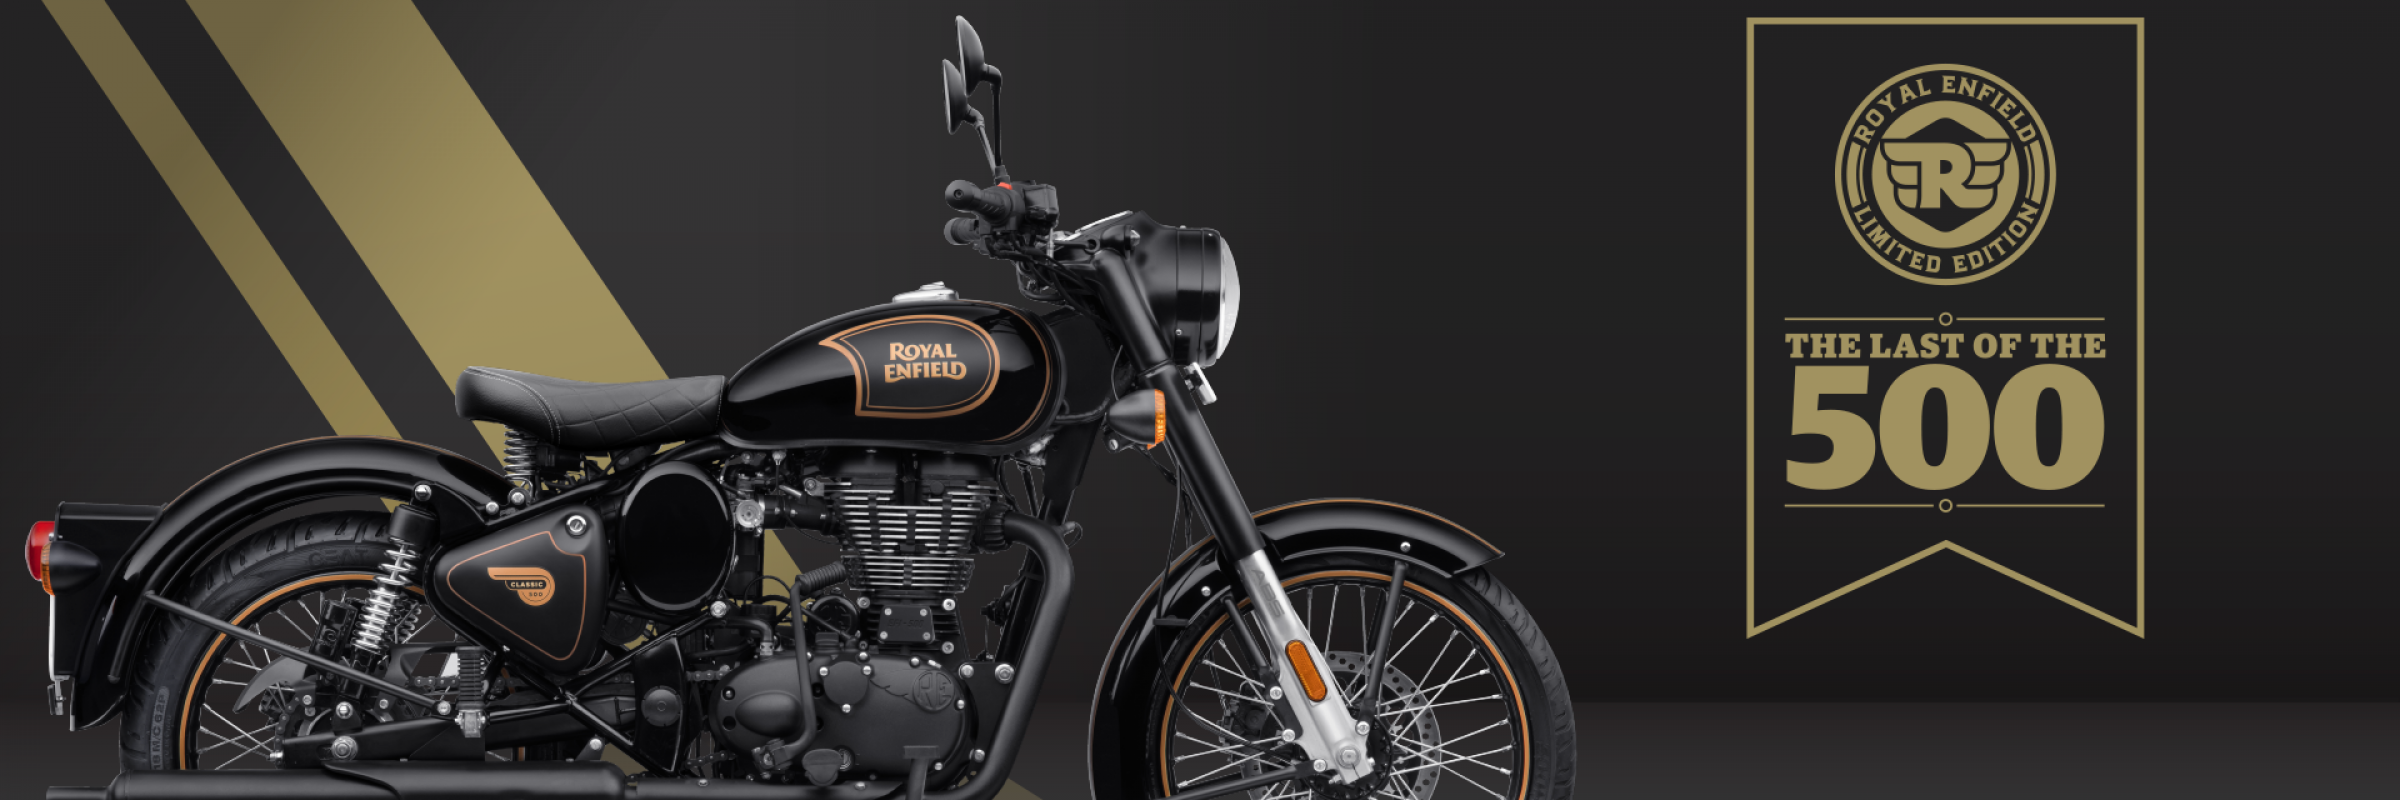 Presenting the limited edition Royal Enfield Classic 500 Tribute Black, the last to carry the iconic long-stroke single cylinder UCE 500cc engine. Handcrafted at the legendary Tiruvottiyur factory in Chennai, this commemorative edition will be made to ord